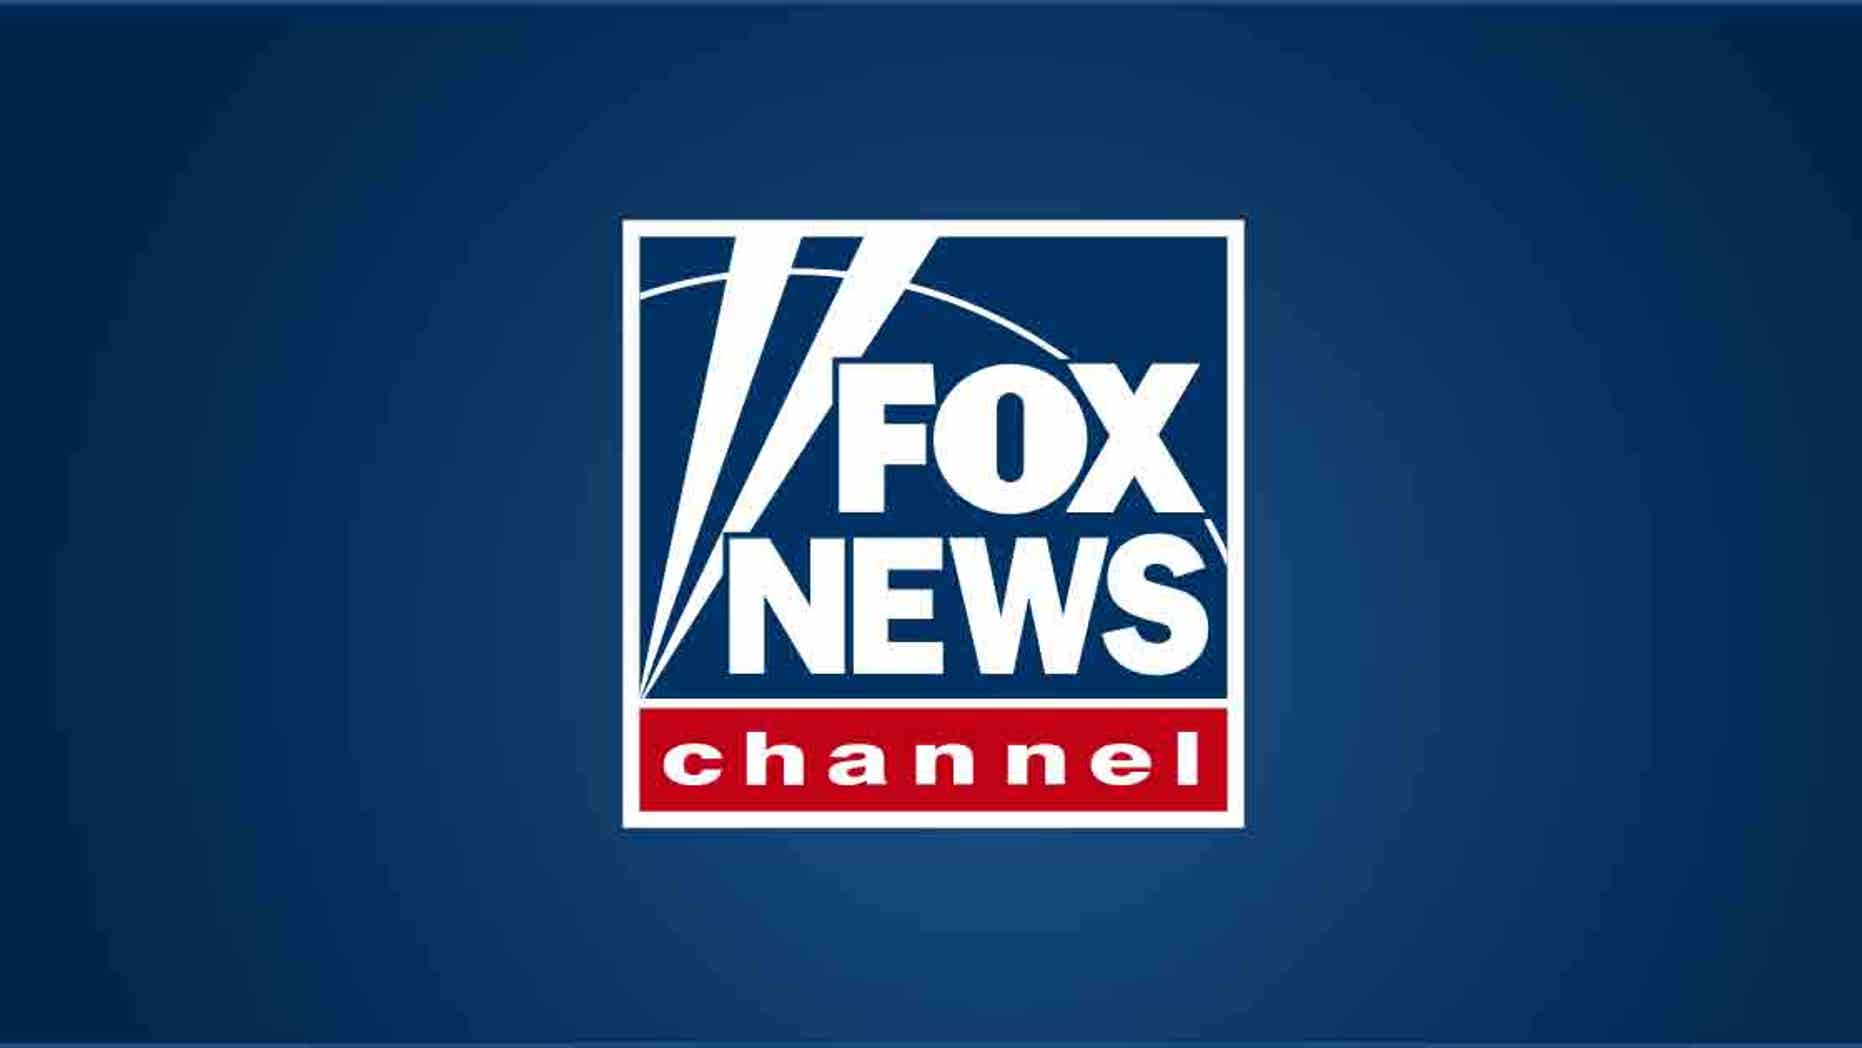 Westlake Legal Group fox-news-channel-logo Today on Fox News: Dec. 9, 2019 fox-news/media fox-news/entertainment/media fox news fnc/media fnc article 8f74d0aa-ab0c-55cb-b002-e65f1df6077b